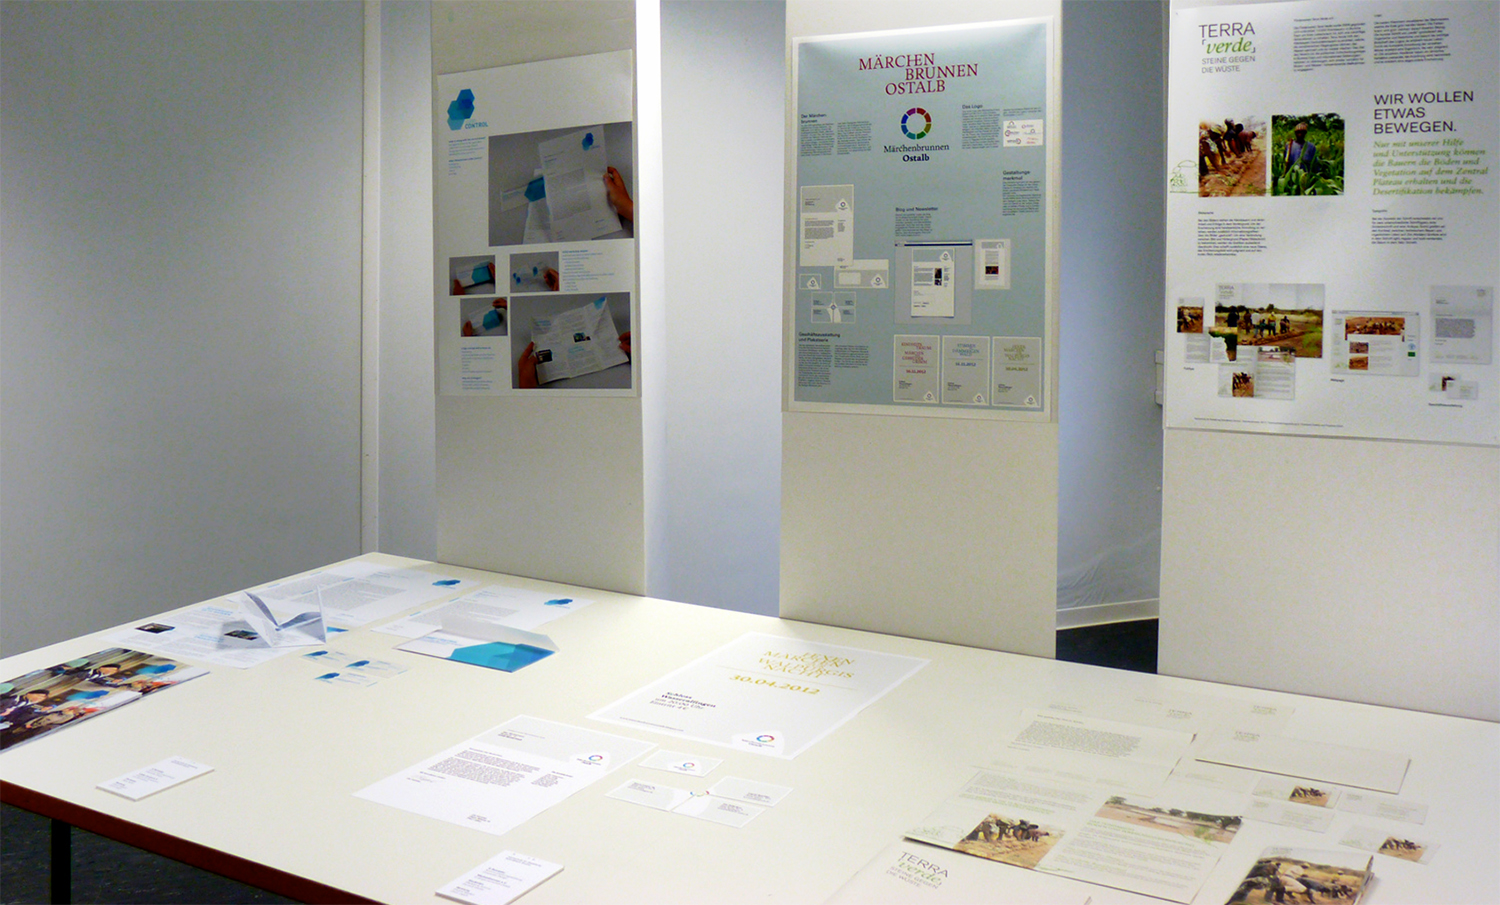 cooperate-design-projects at the exhibition in Schwäbsich Gmünd (Photo: Ingrid Scholz, copyright: HfG, 14.7.2012)